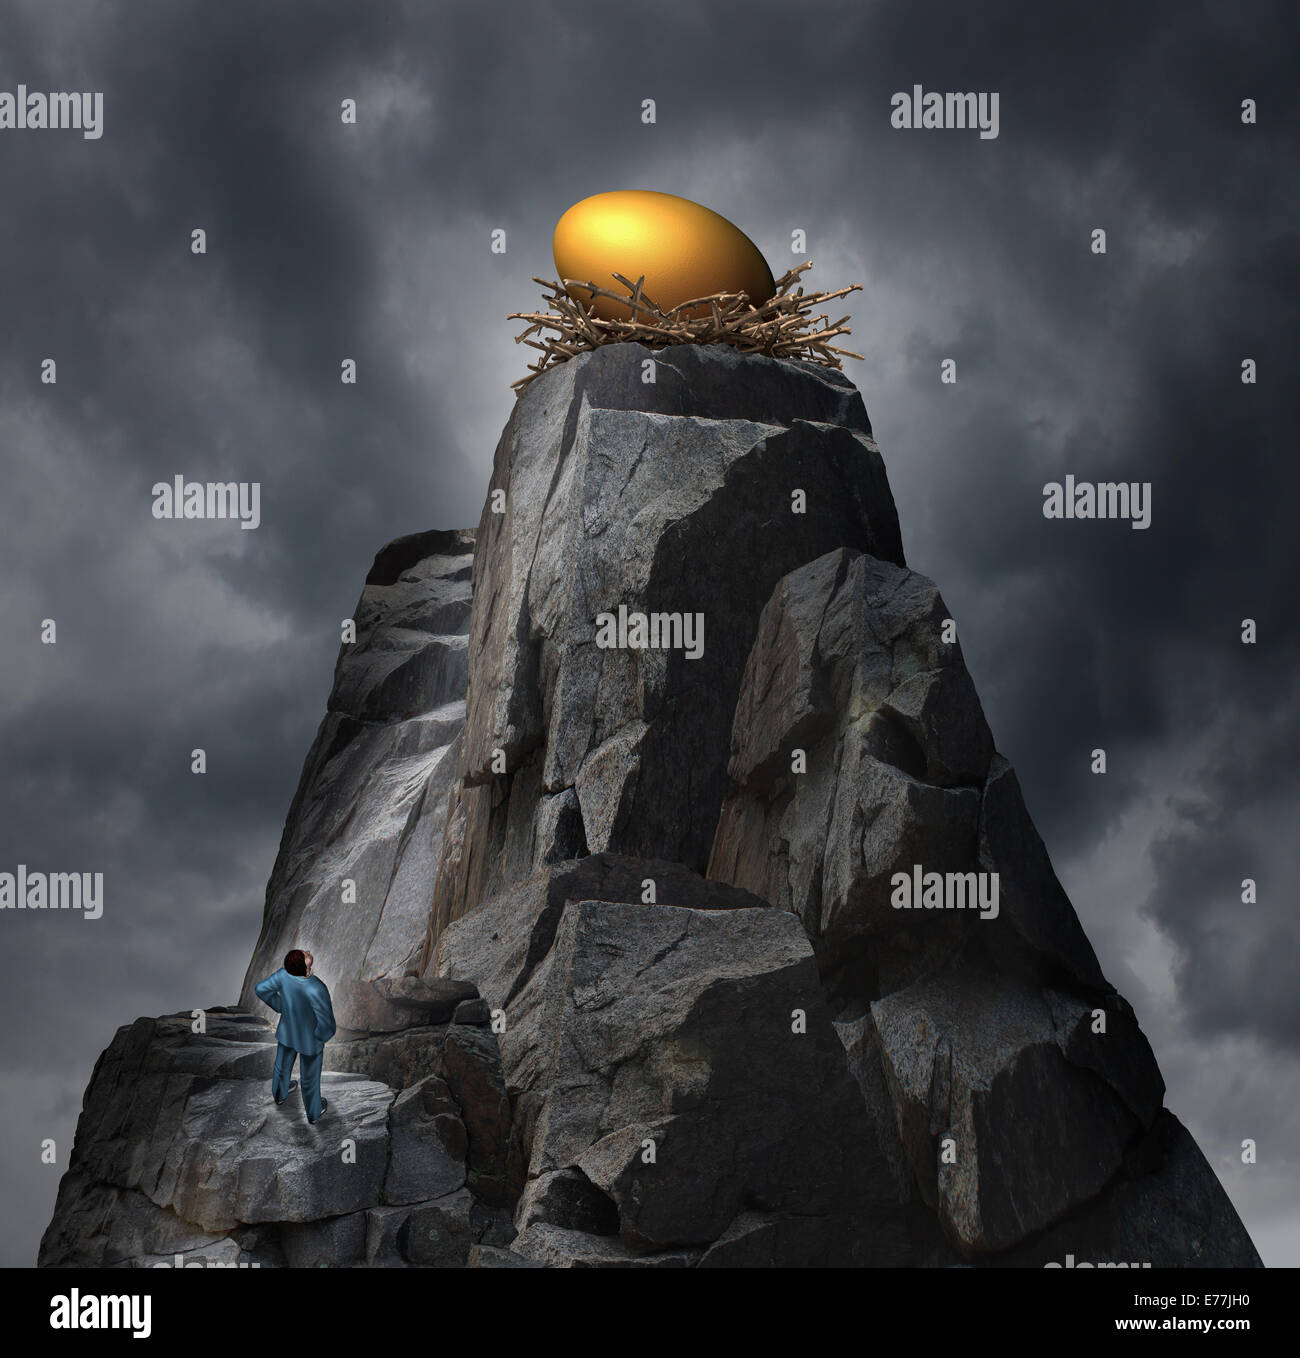 Golden nest egg concept as a retirement plan metaphor with a man standing at the bottom of a rock cliff thinking - Stock Image